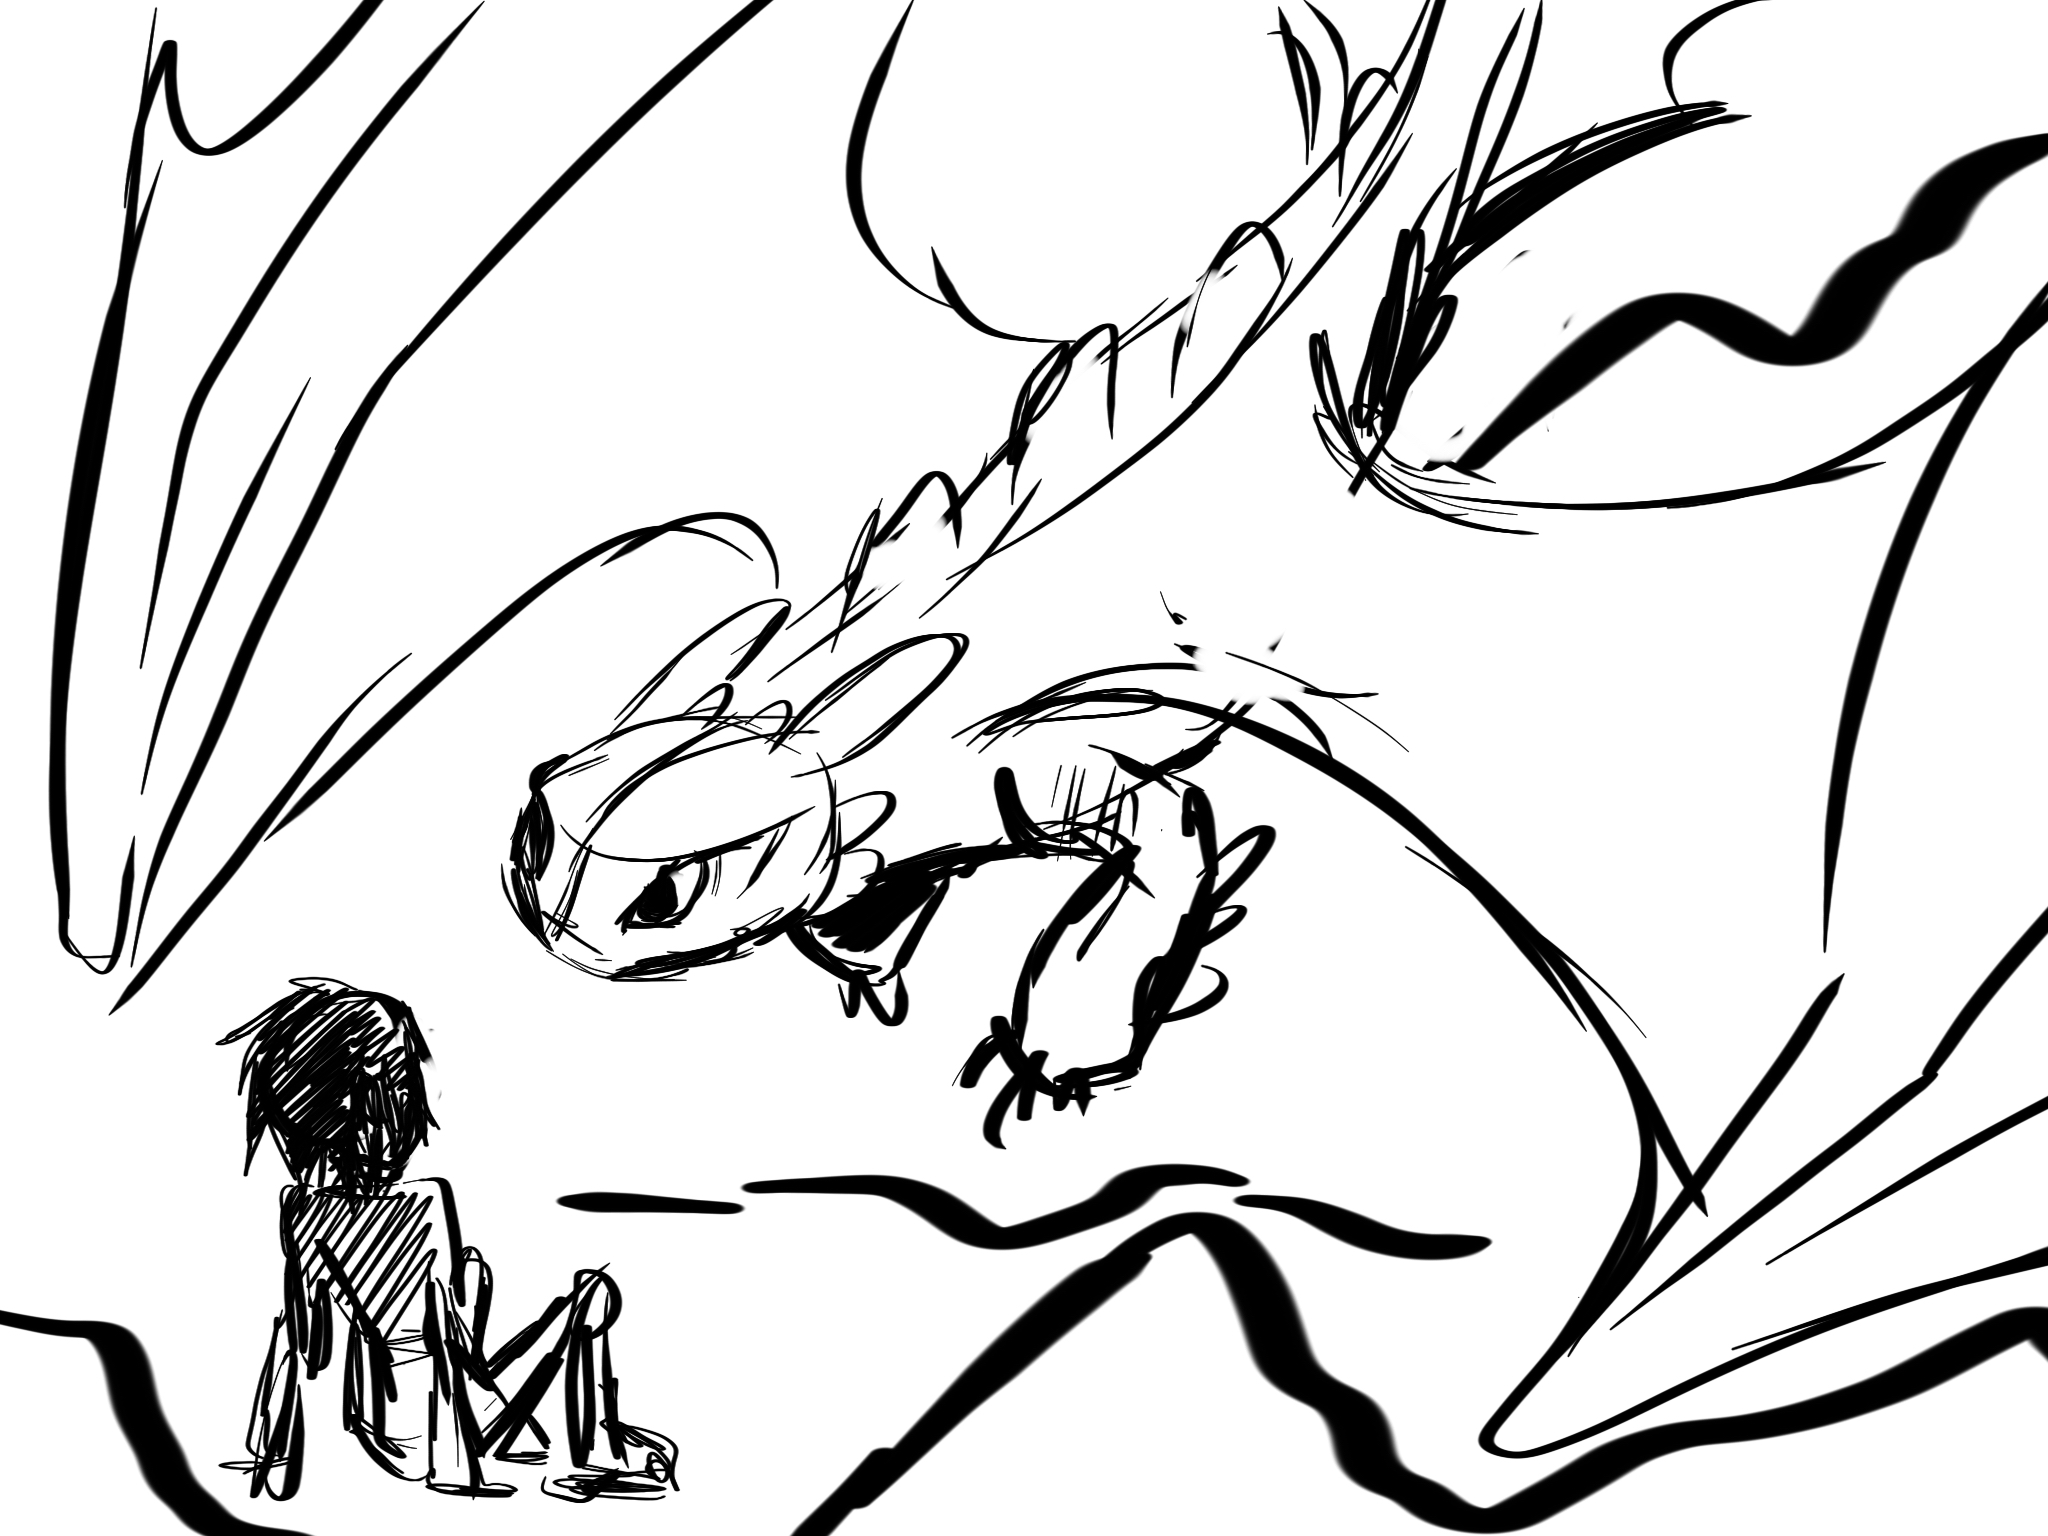 Fast sketch of Toothless and Hiccup by J-C-P